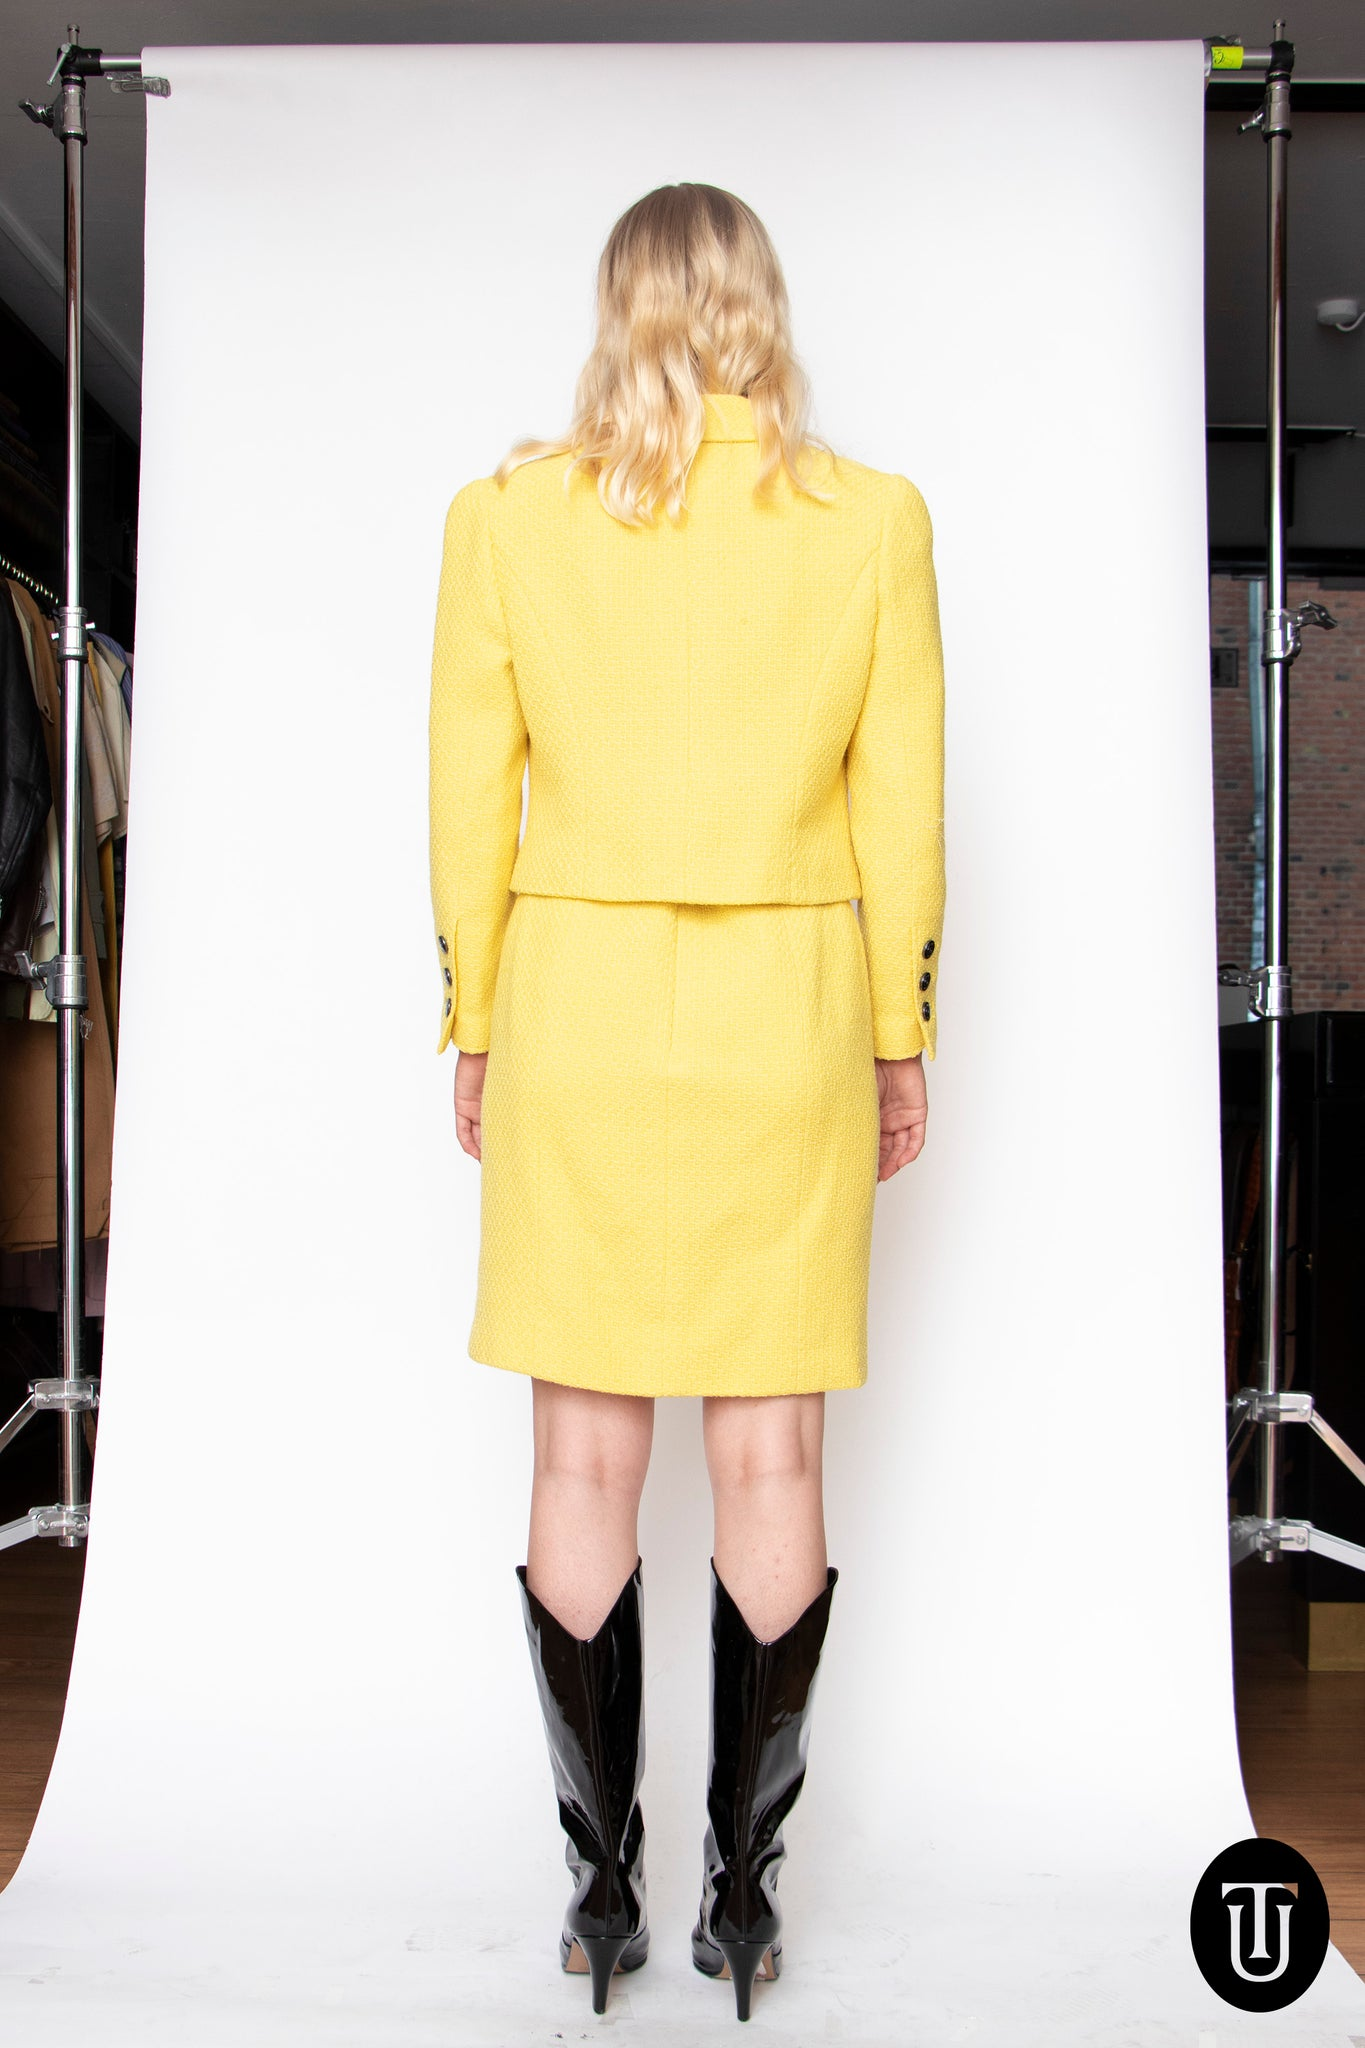 A 1997 Vintage Chanel Canary yellow Skirt Suit S